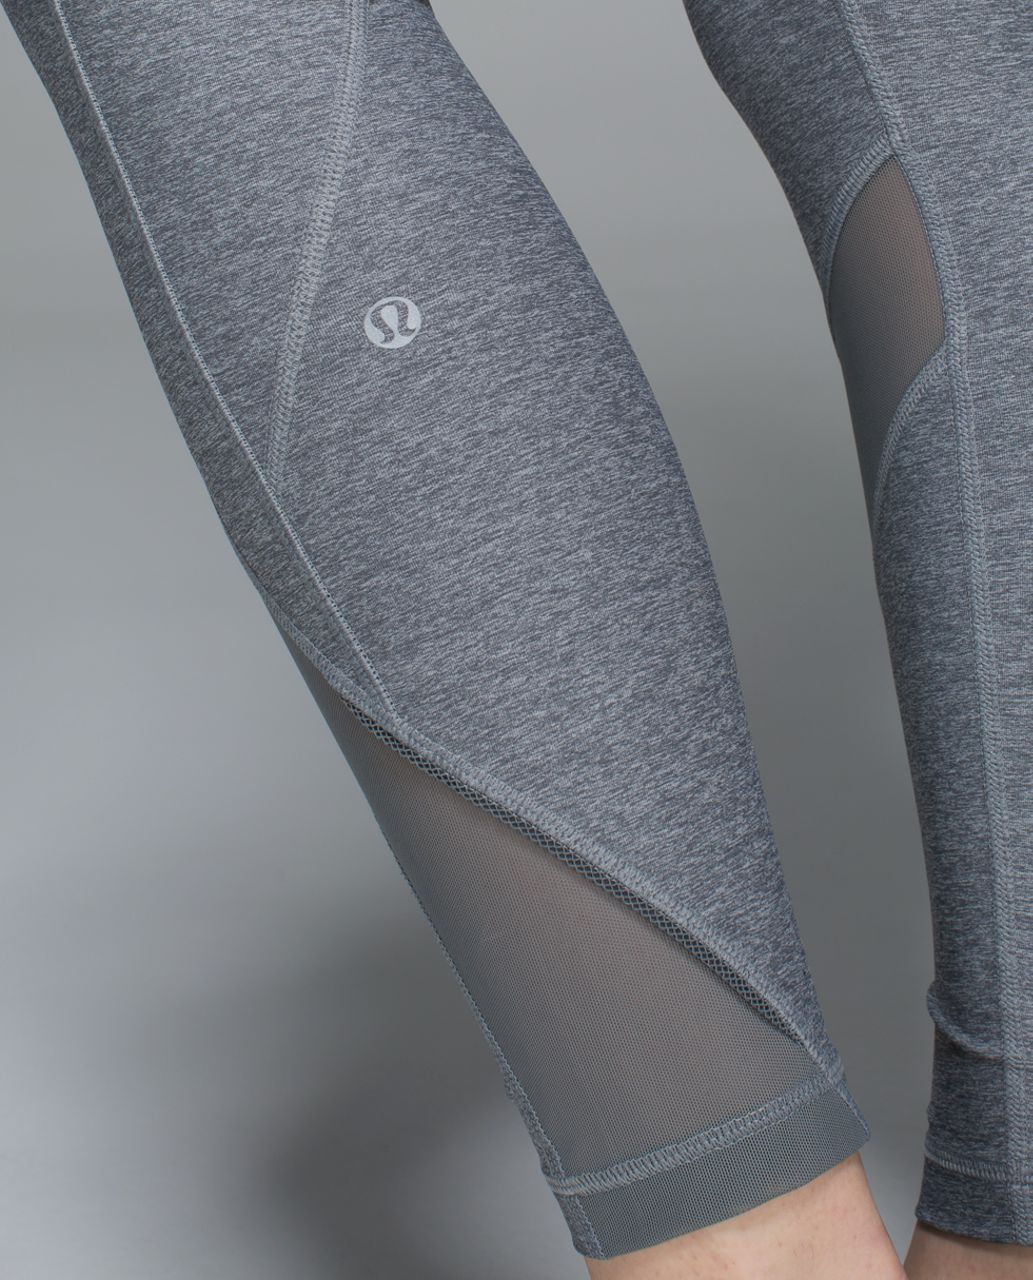 Lululemon Inspire Tight II (Mesh) - Heathered Slate / Quiet Stripe Butter Pink Electric Coral / Electric Coral